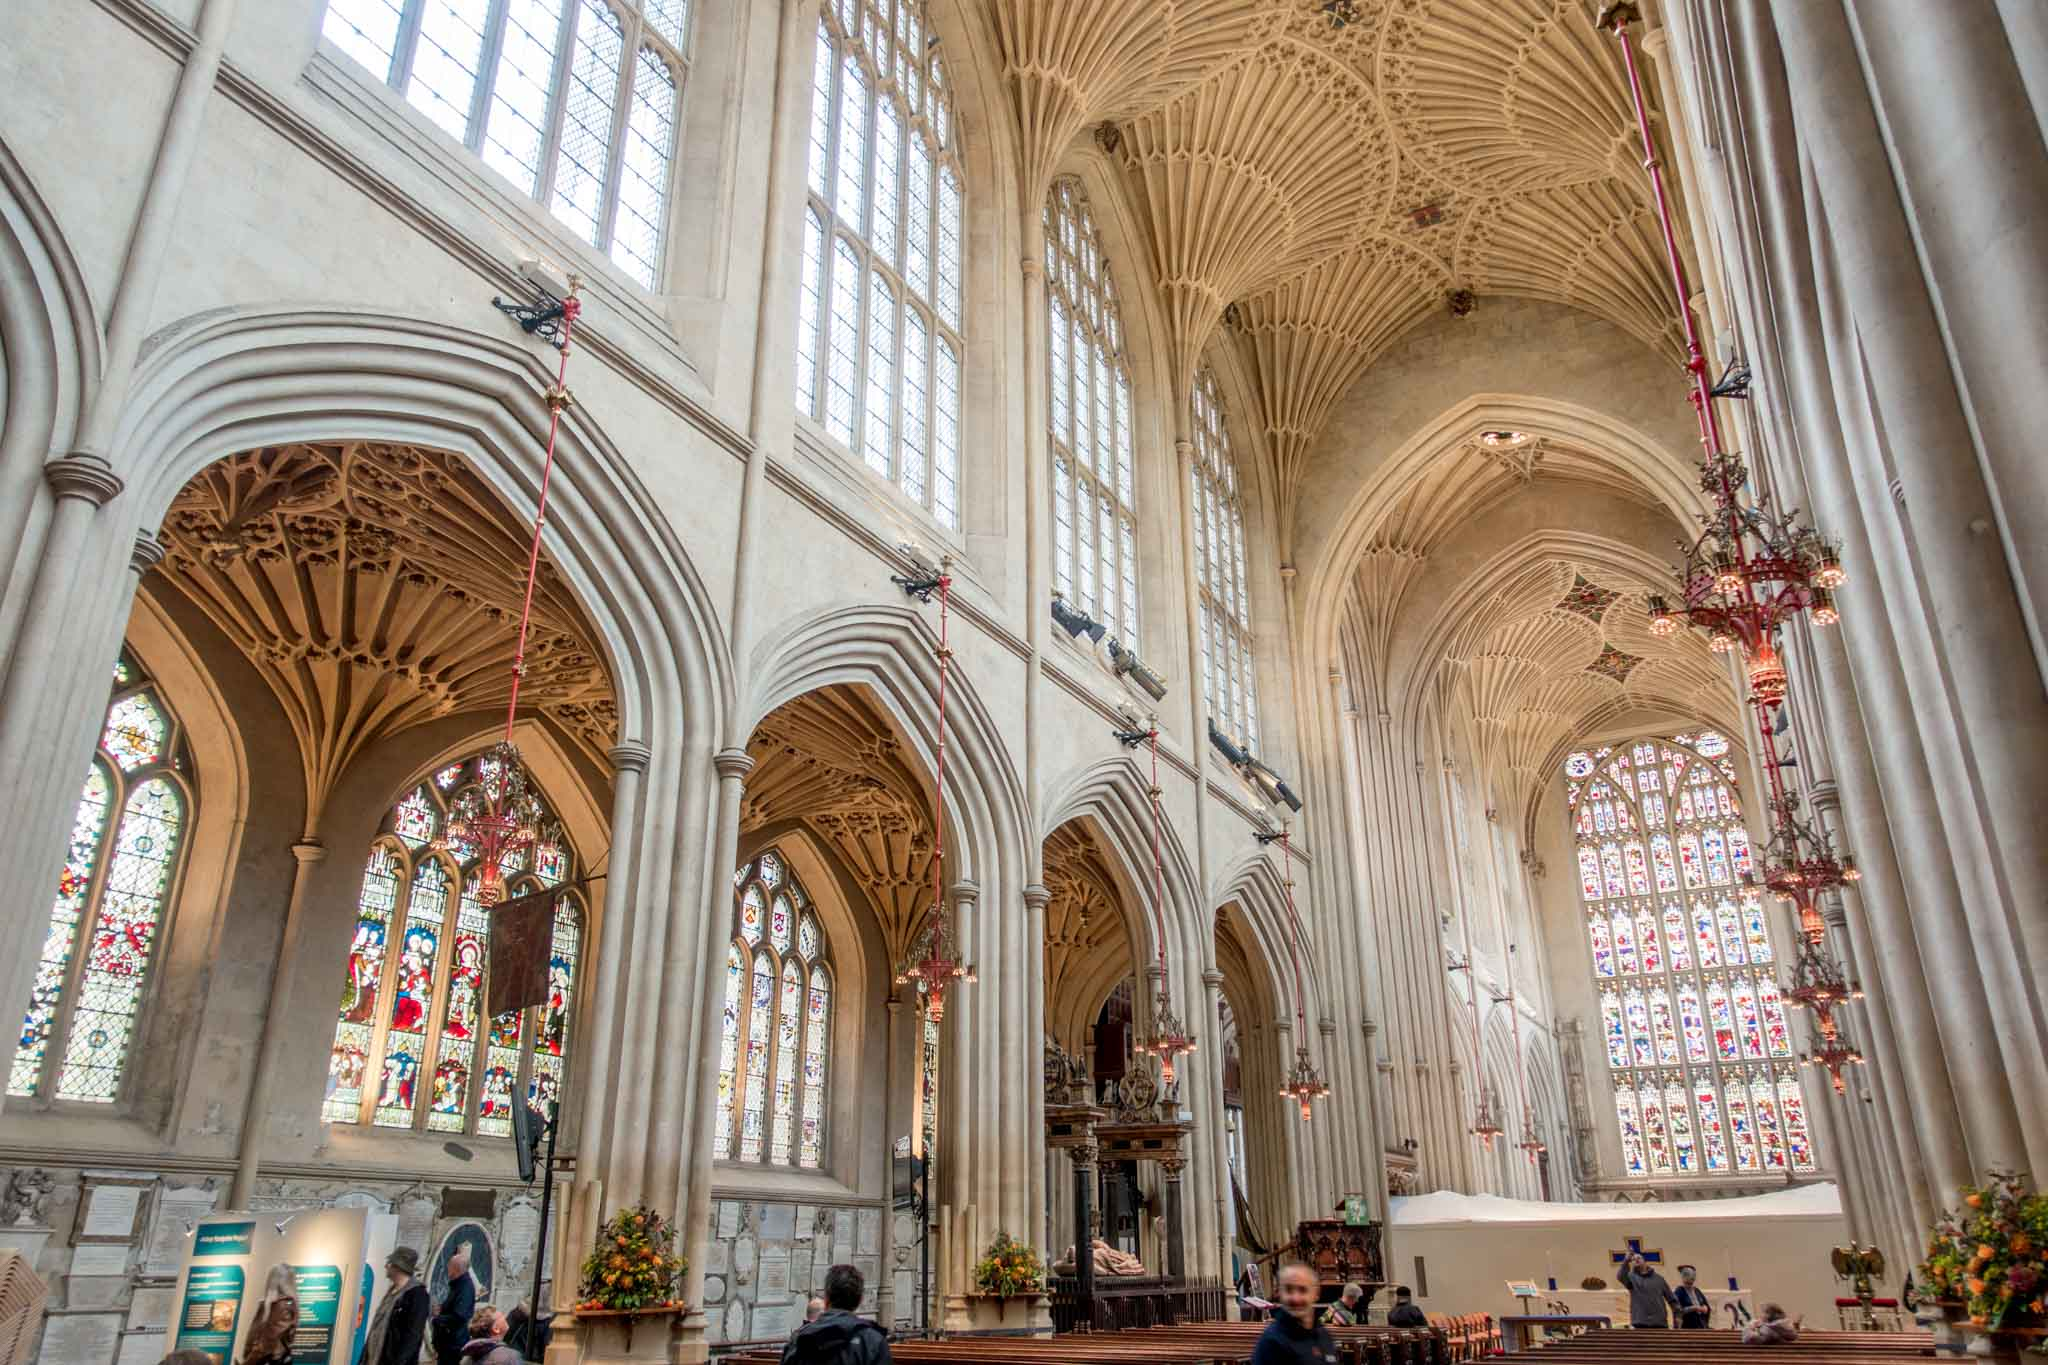 The interior of the Bath Abbey in England.